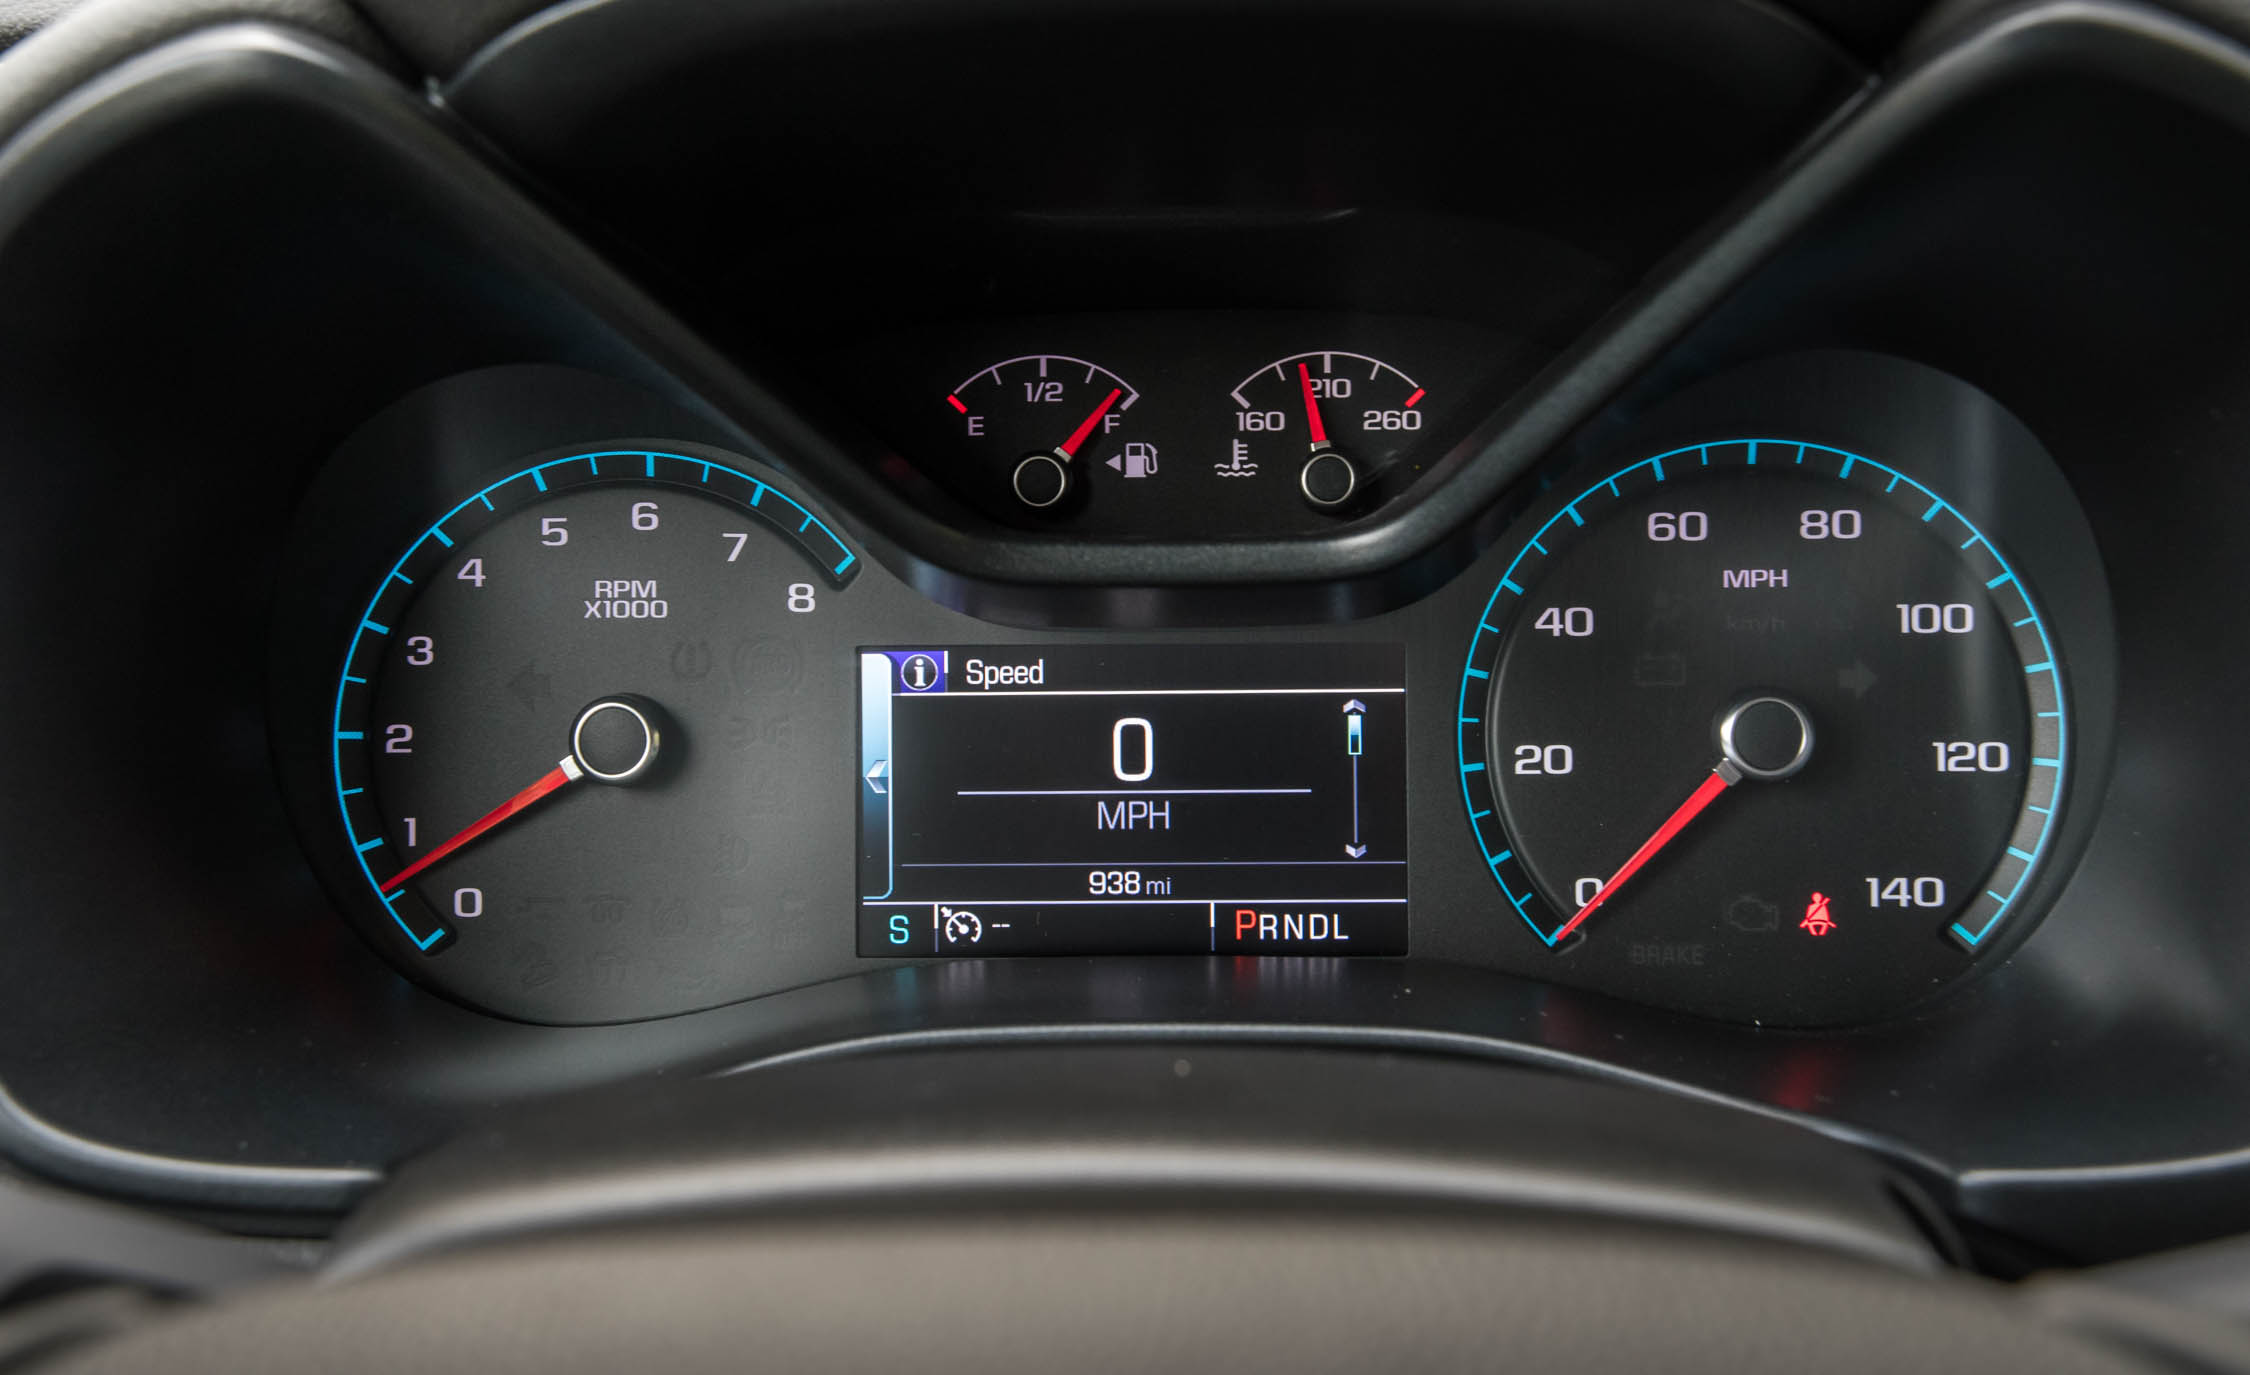 2017 Chevrolet Colorado LT Interior View Speedometer Instrument Cluster (Photo 39 of 41)